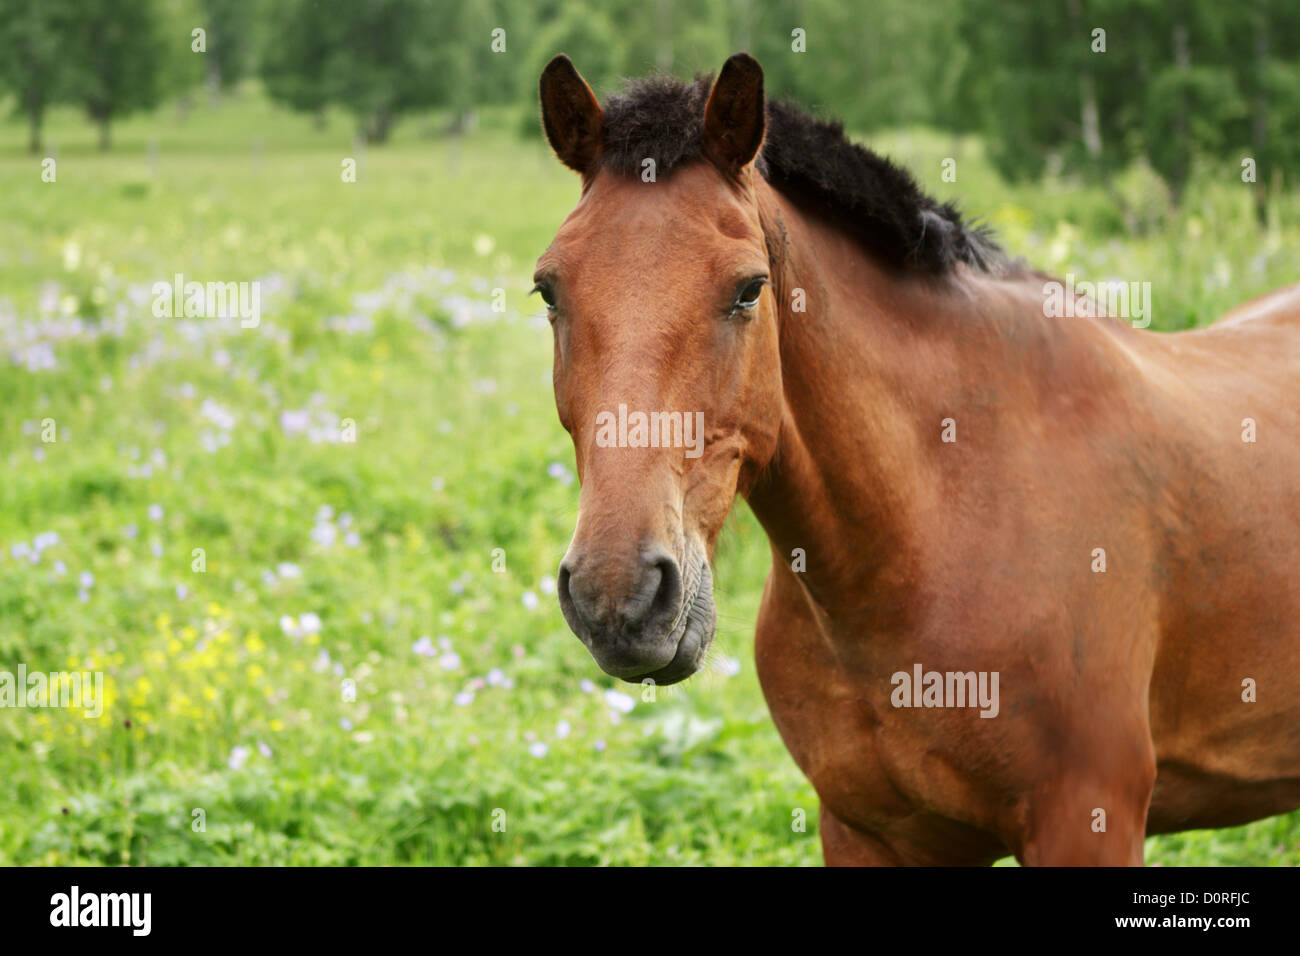 Bay horse looks in the chamber - Stock Image